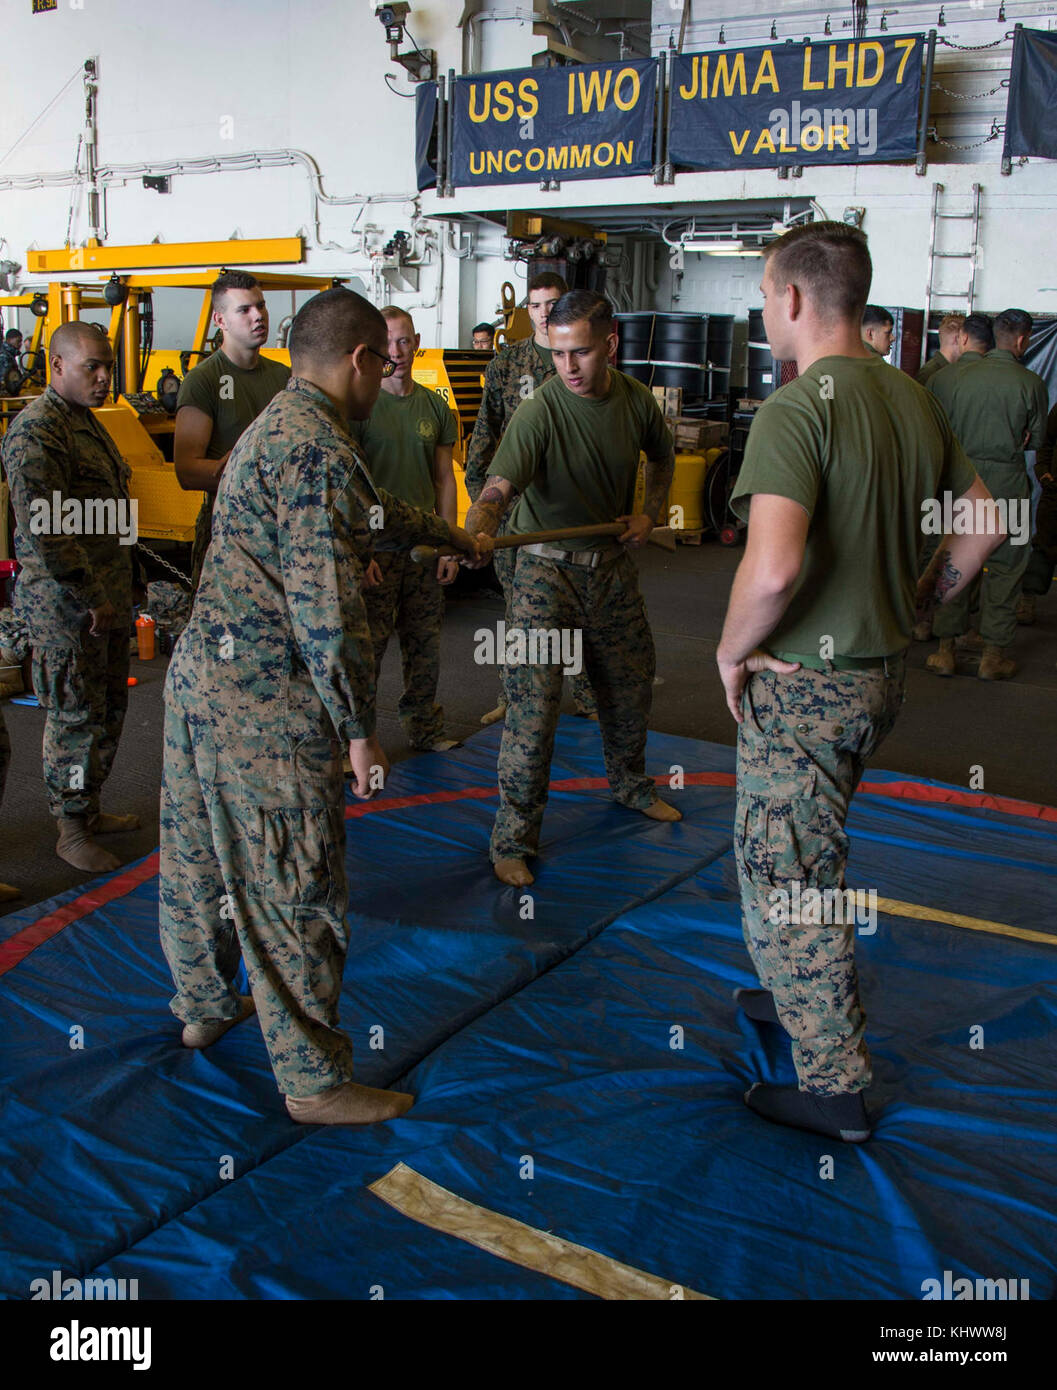 ATLANTIC OCEAN (Nov. 16, 2017) Marines assigned to Battalion Landing Team 26E Company practice basic self-defense in the hangar bay of the amphibious assault ship USS Iwo Jima (LHD 7). Iwo Jima, components of the Iwo Jima Amphibious Ready Group and the 26th Marine Expeditionary Unit are conducting a Combined Composite Training Unit Exercise that is the culmination of training for the Navy-Marine Corps team and will certify them for deployment. (U.S. Navy photo by Mass Communication Specialist 3rd Class Kevin Leitner/Released) Stock Photo